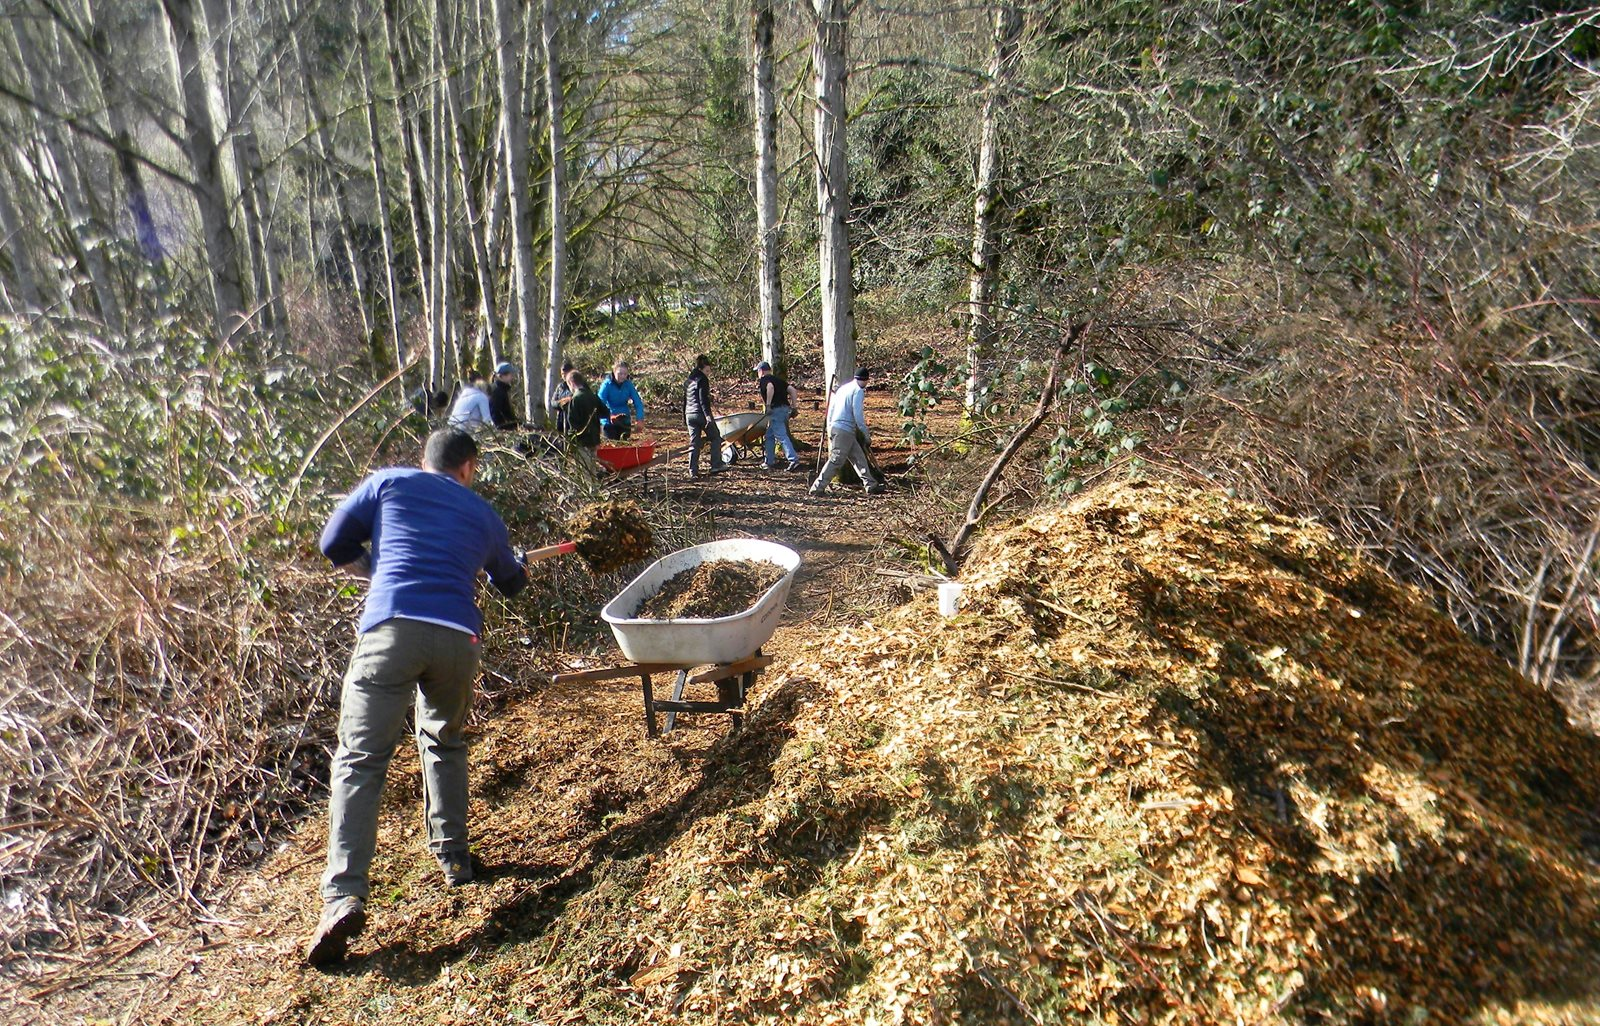 Forest cleanup work with wheelbarrow